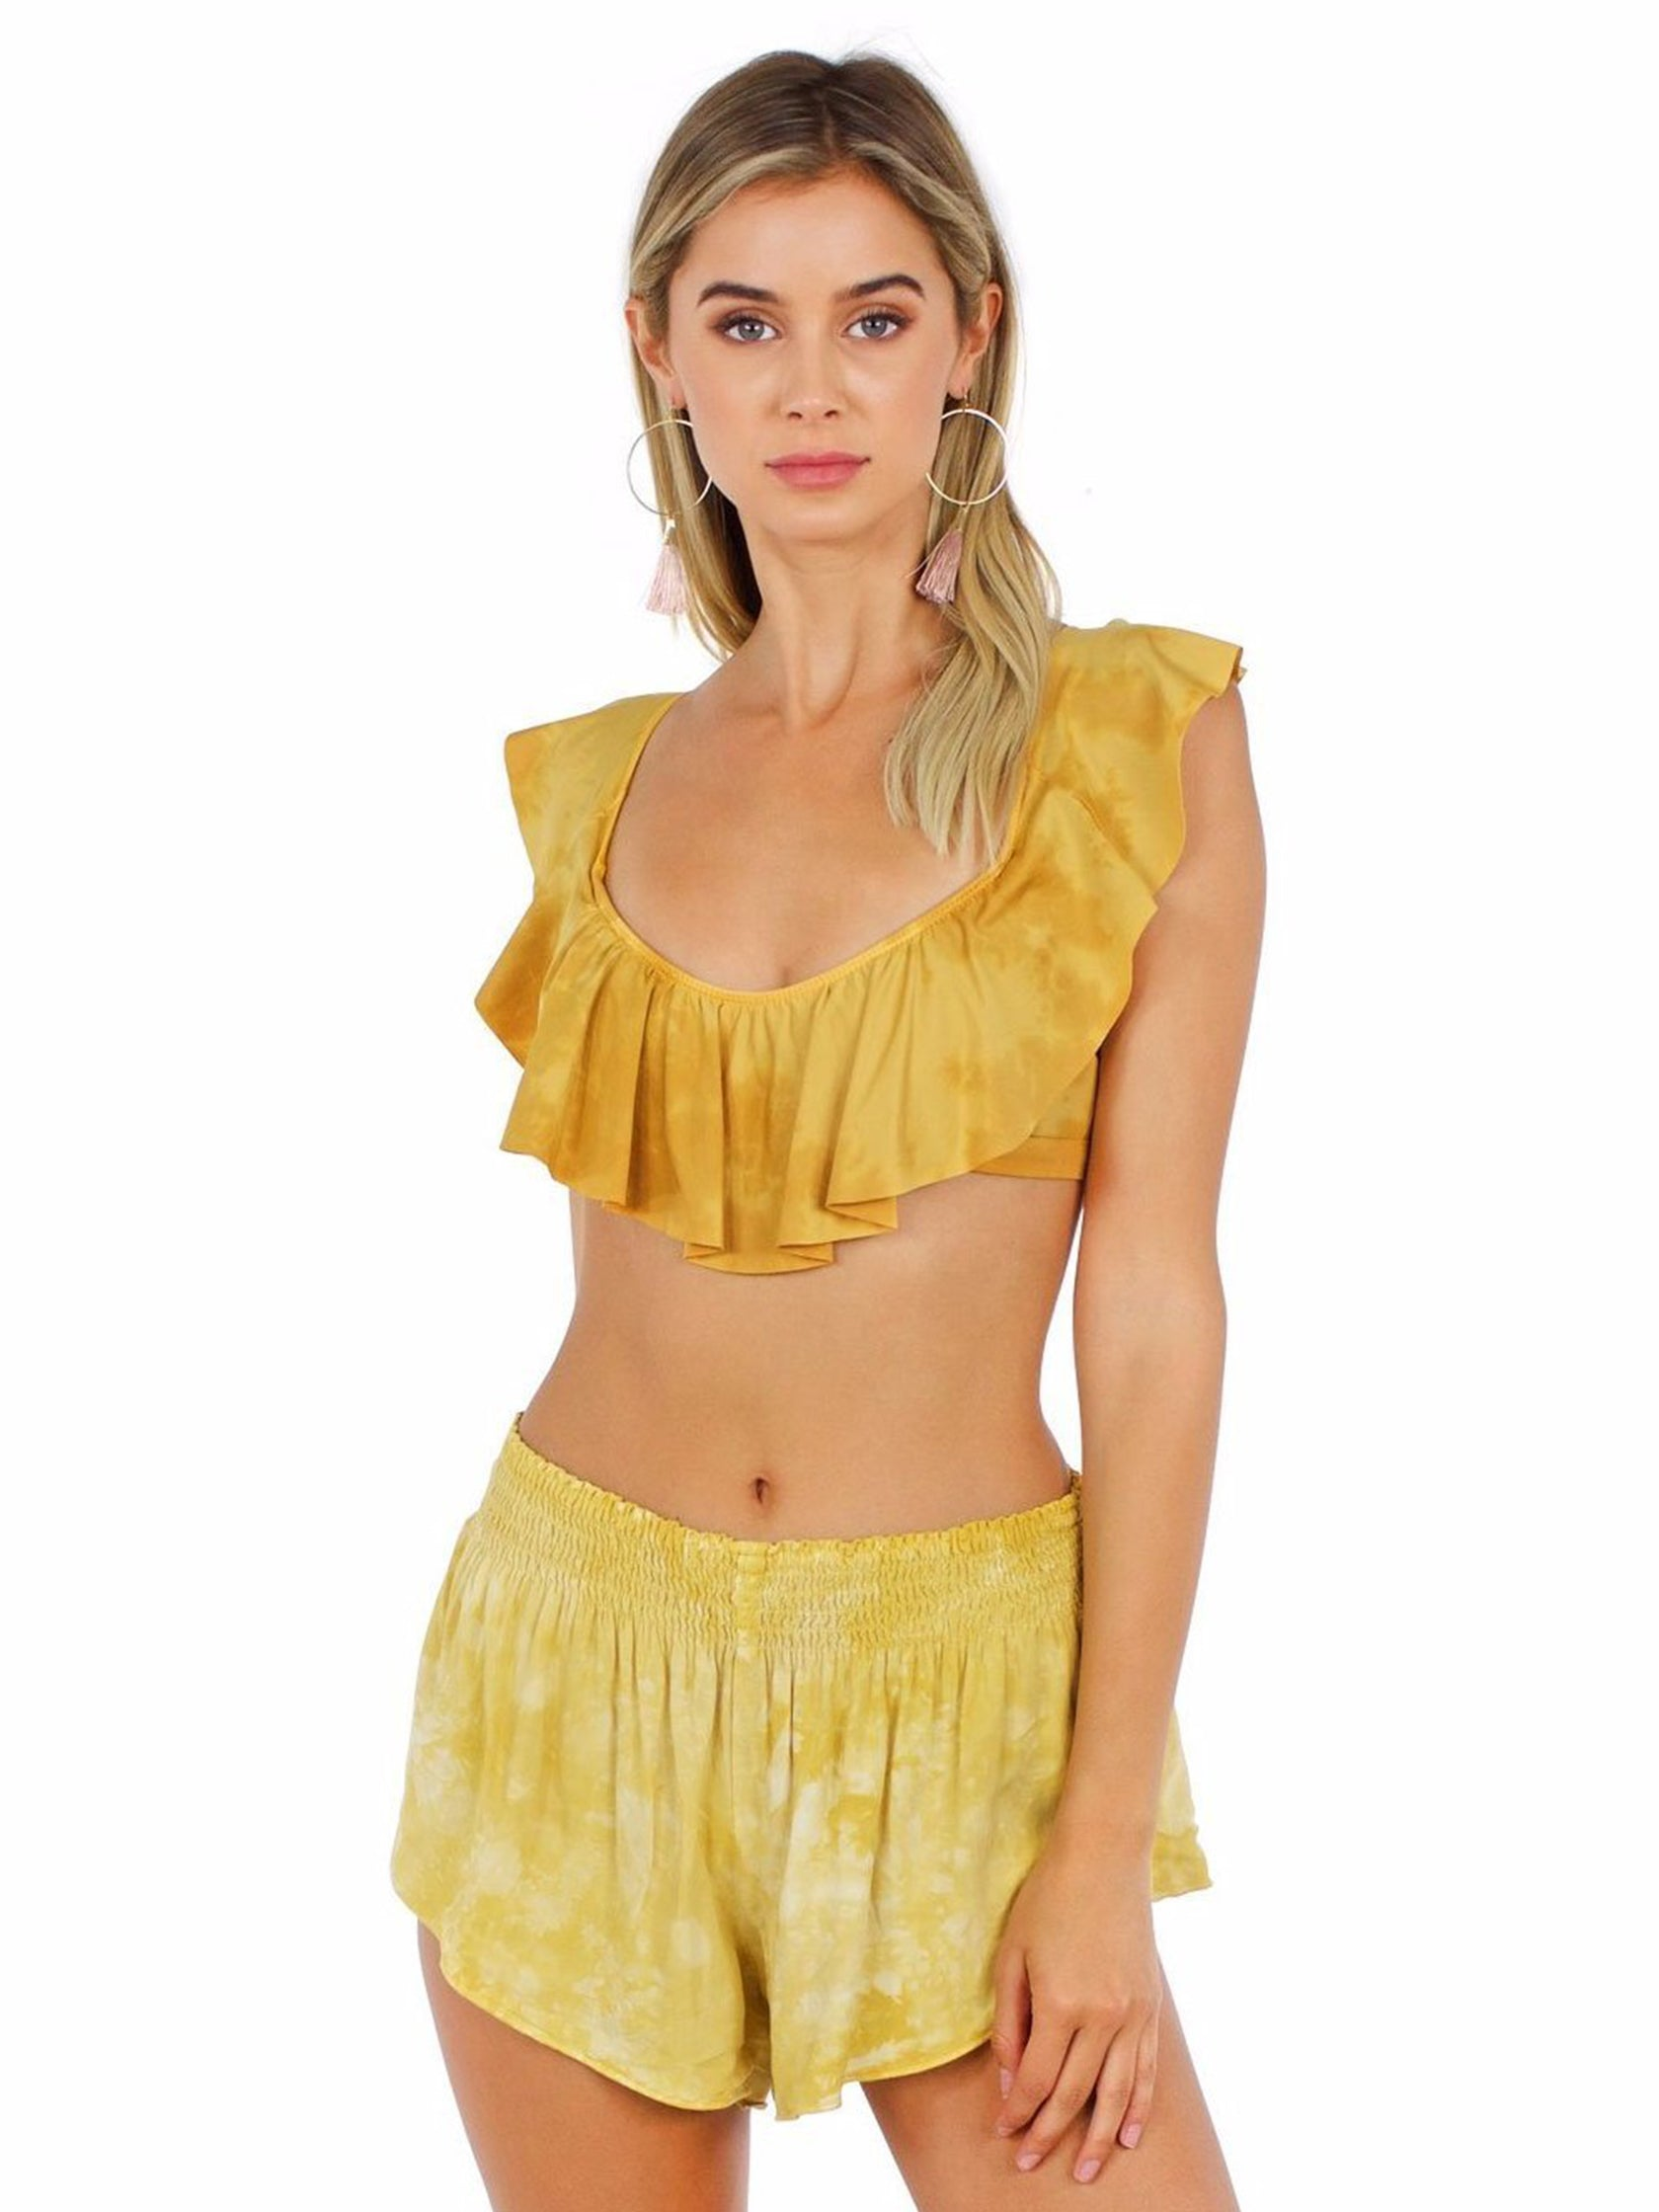 Women outfit in a top rental from Blue Life called Flutter Bikini Top